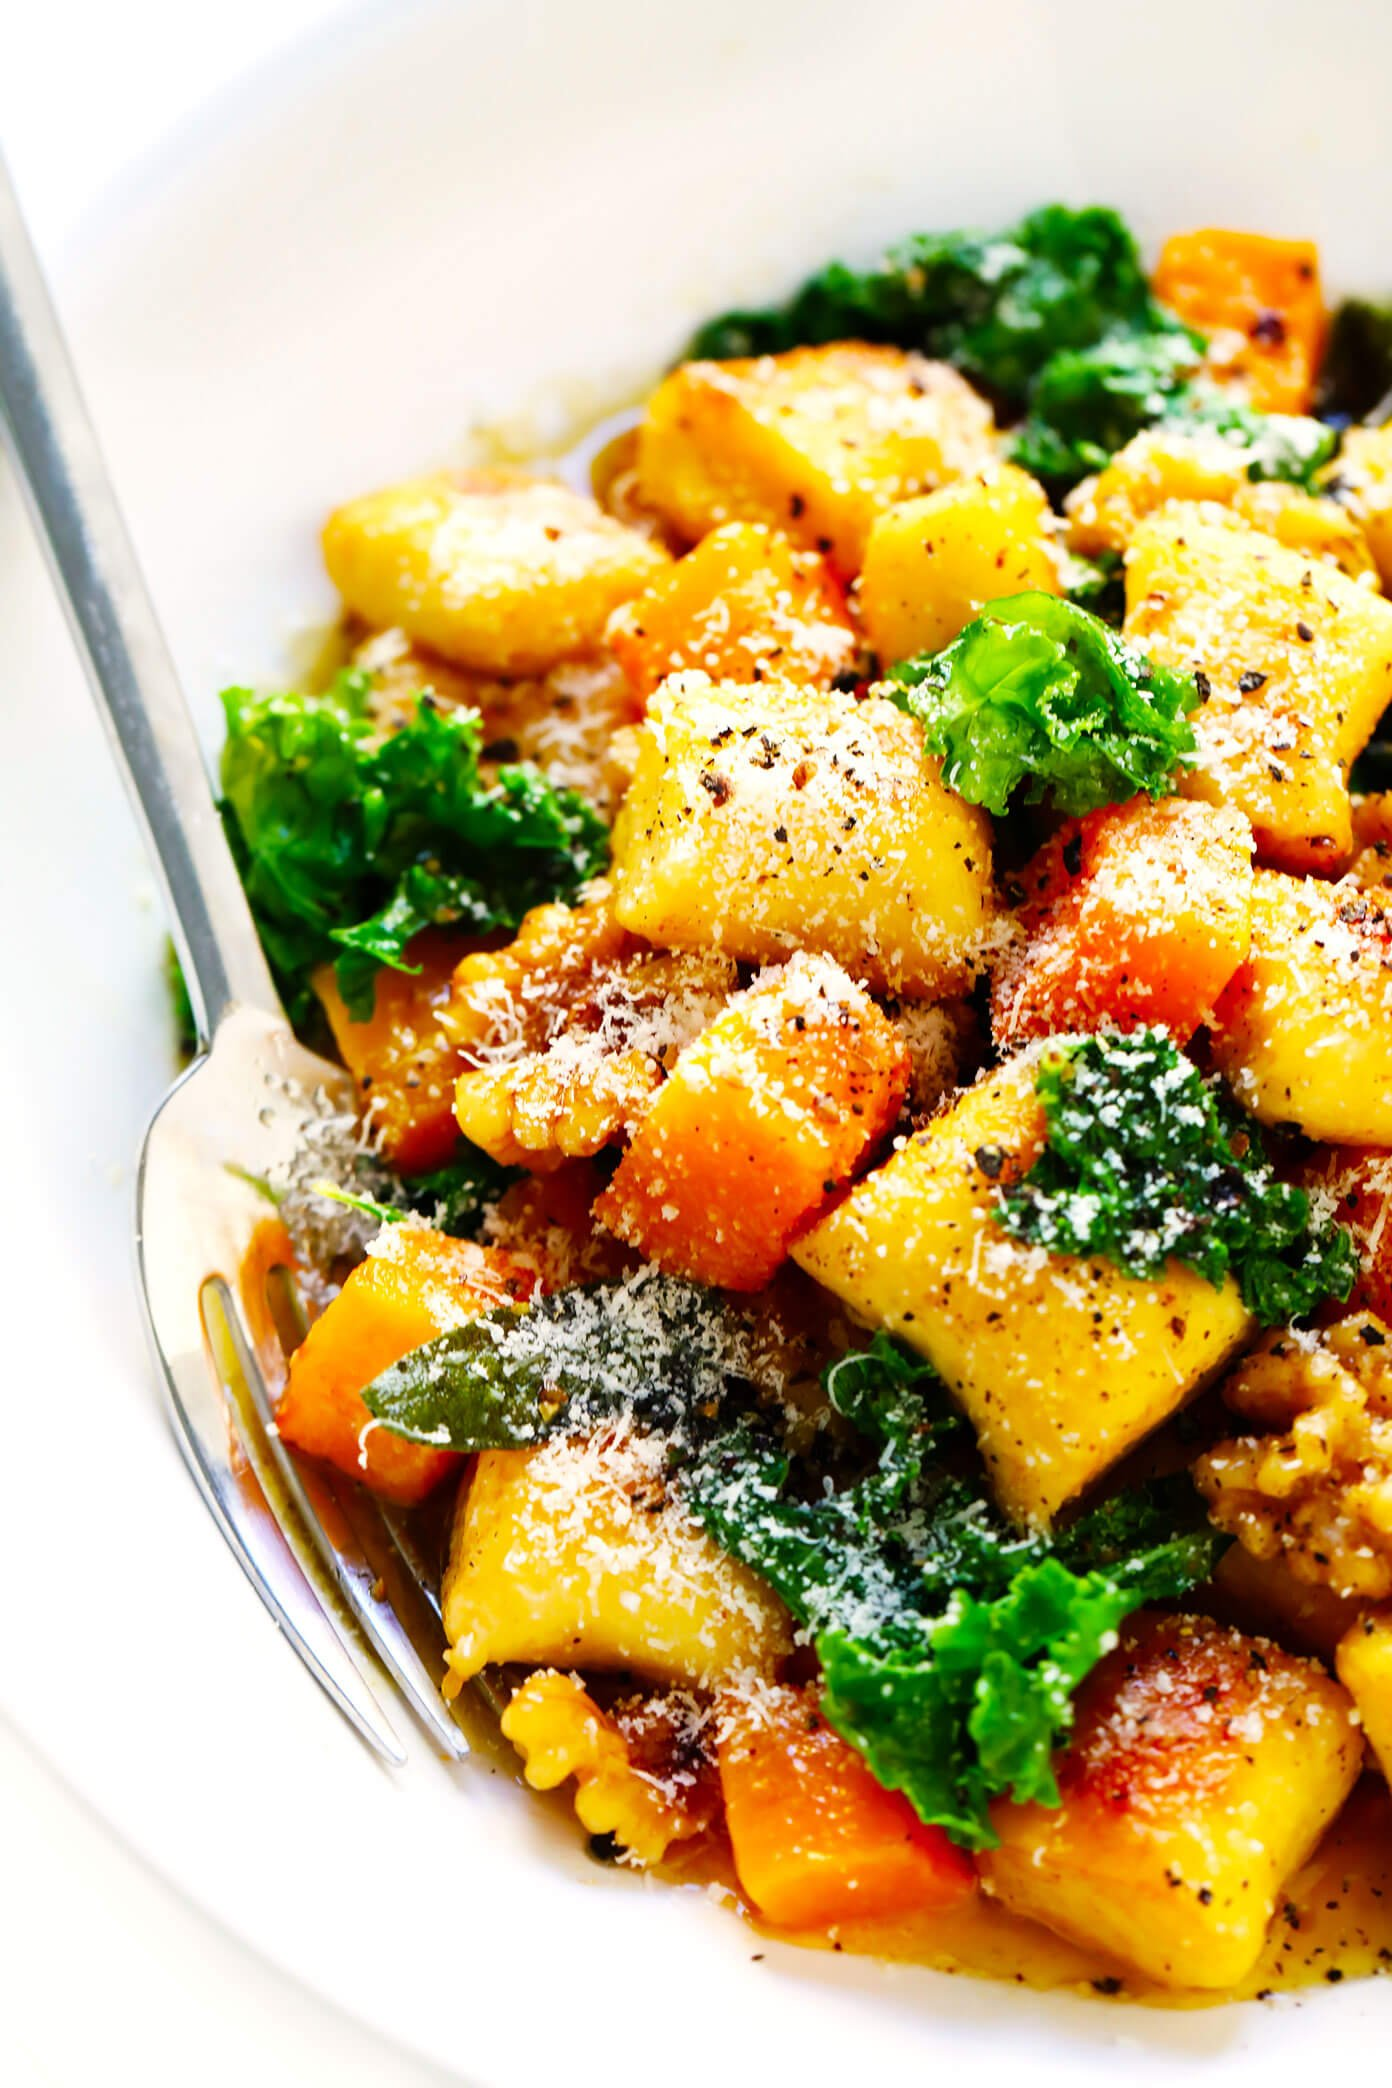 Toasted Gnocchi with Roasted Butternut Squash, Kale, Parmesan, Walnuts and Sage Brown Butter Sauce